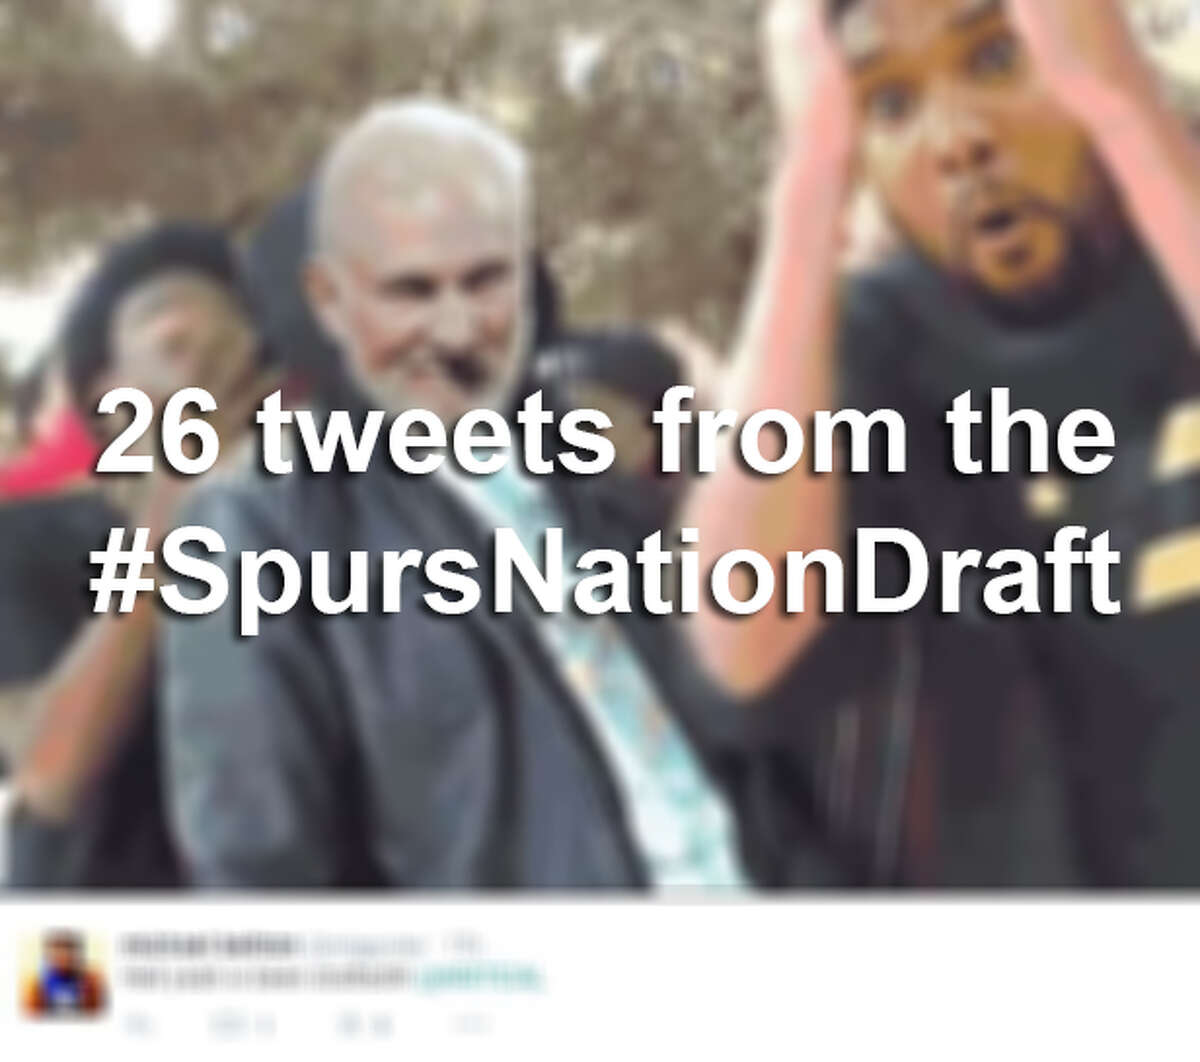 Click through the slideshow for some hilarious reactions to the #SpursNationDraft.